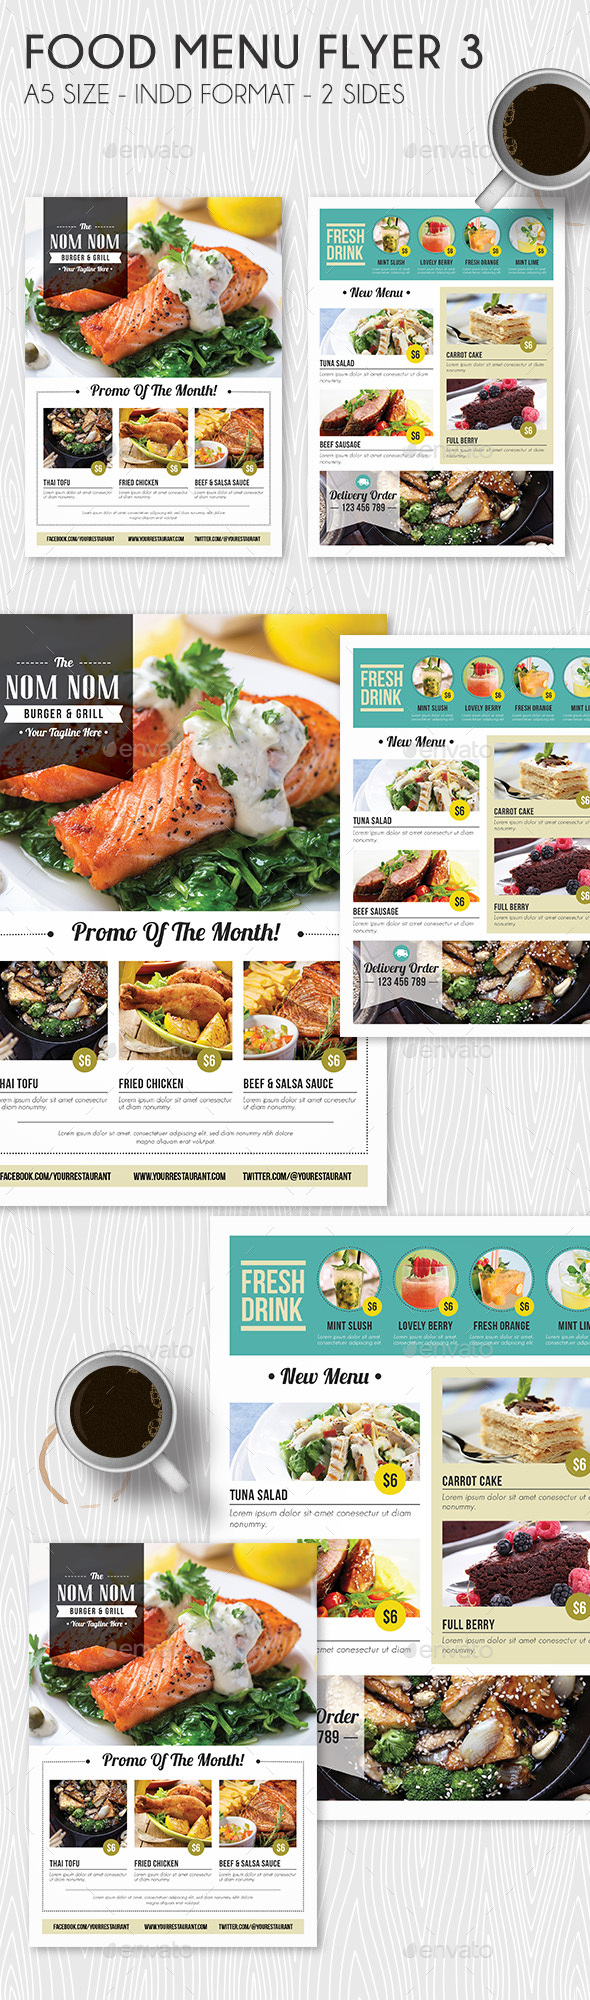 Food Menu Flyer 3